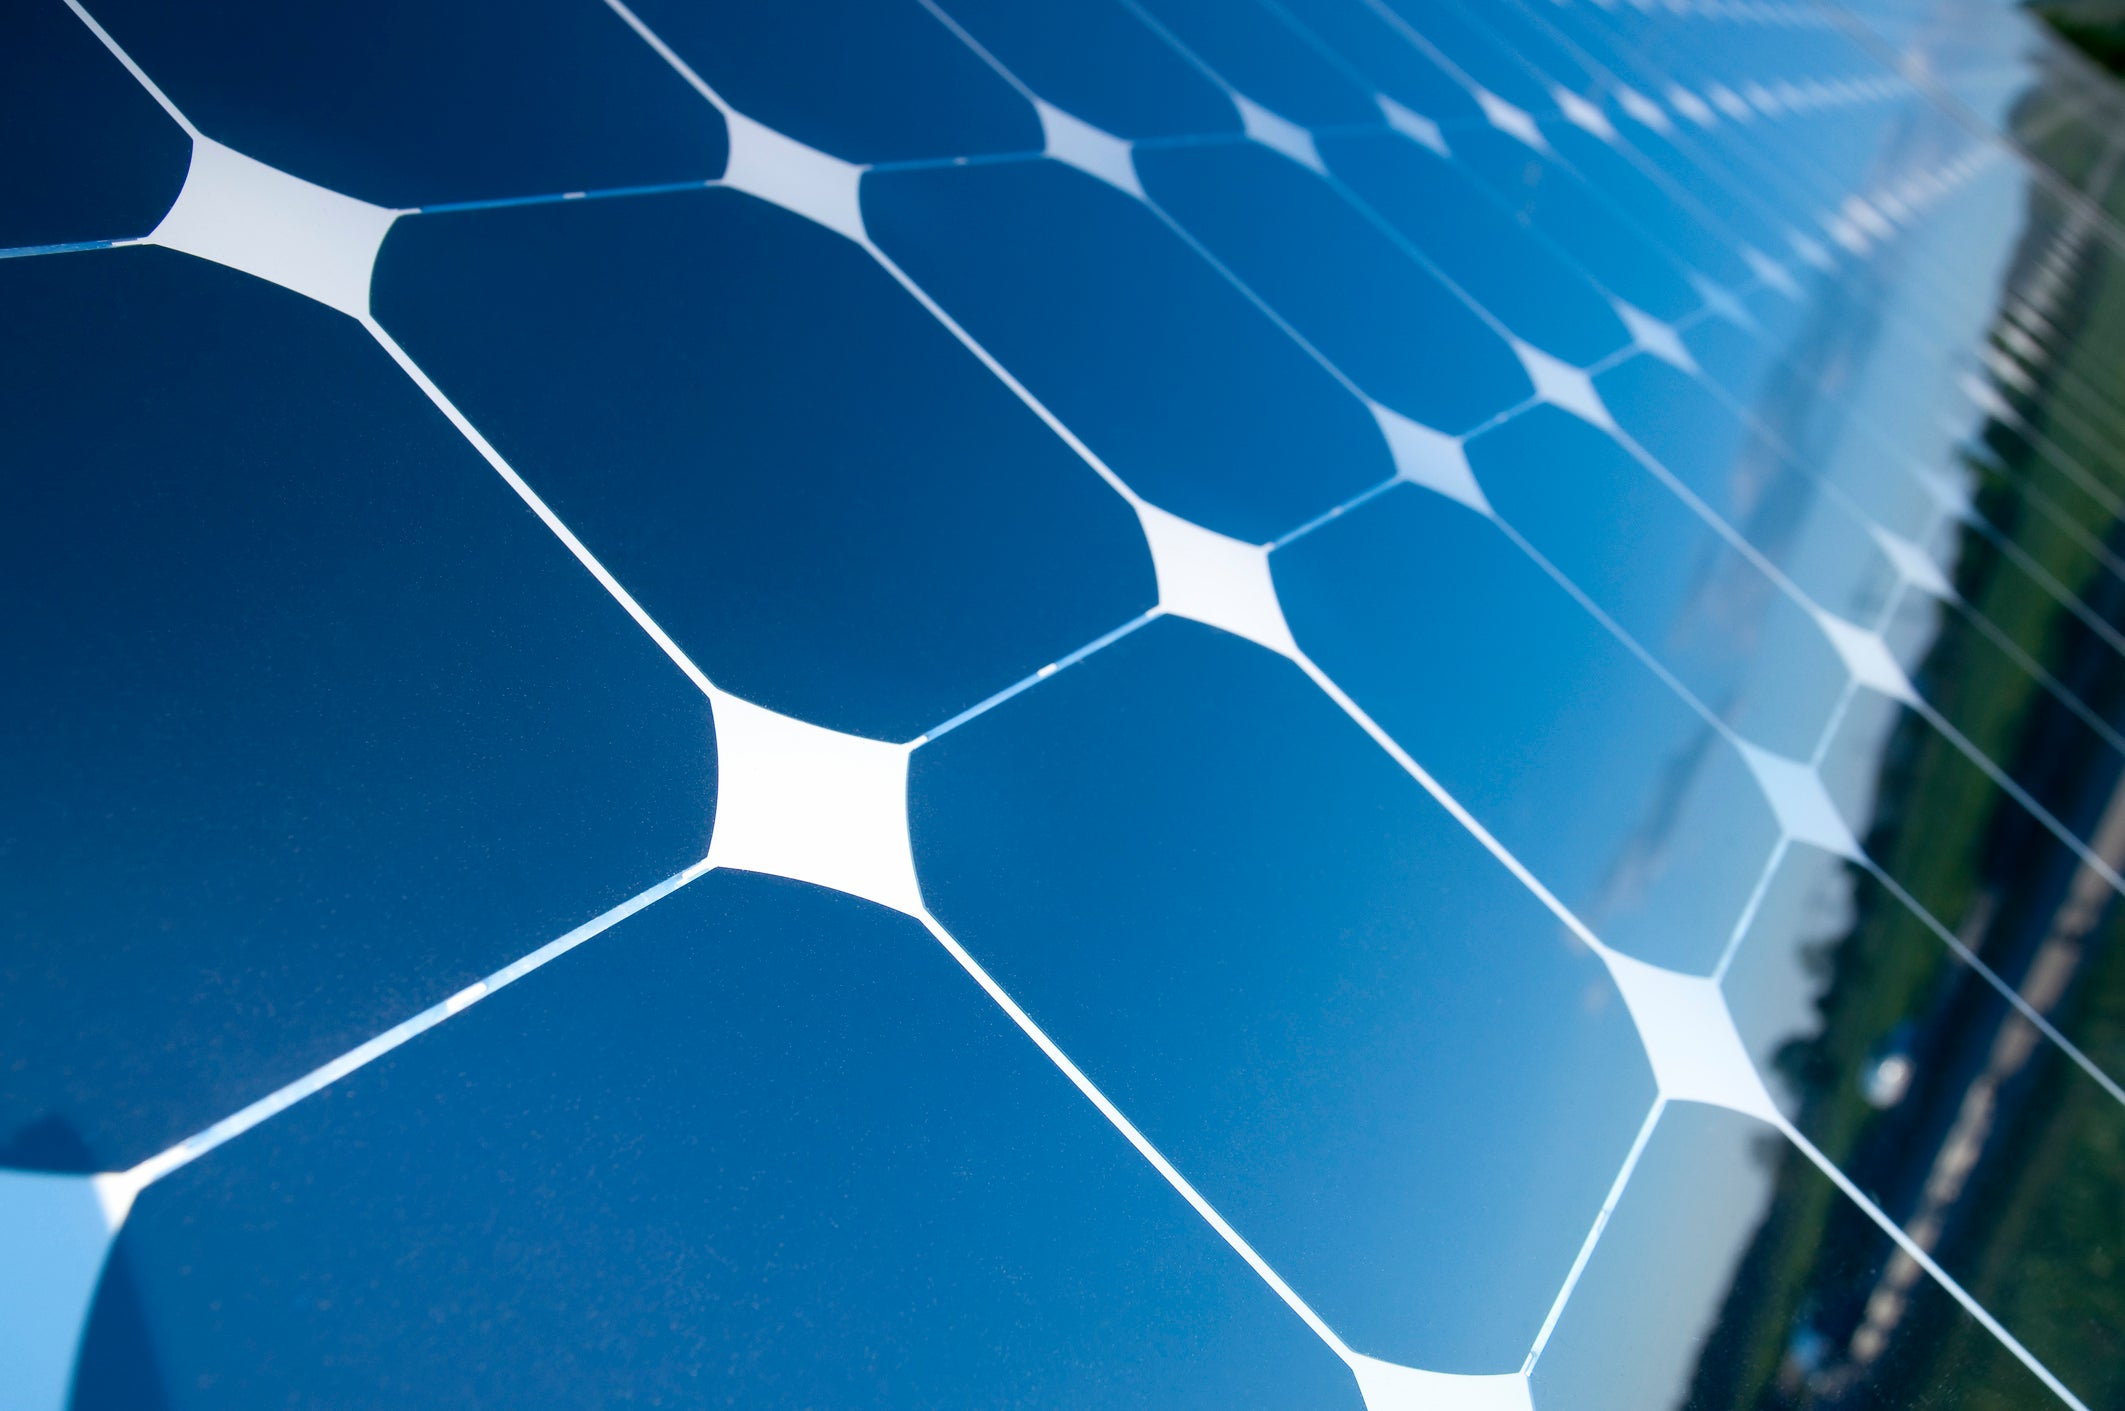 Sunlight To Electricity What Makes A Solar Cell Work